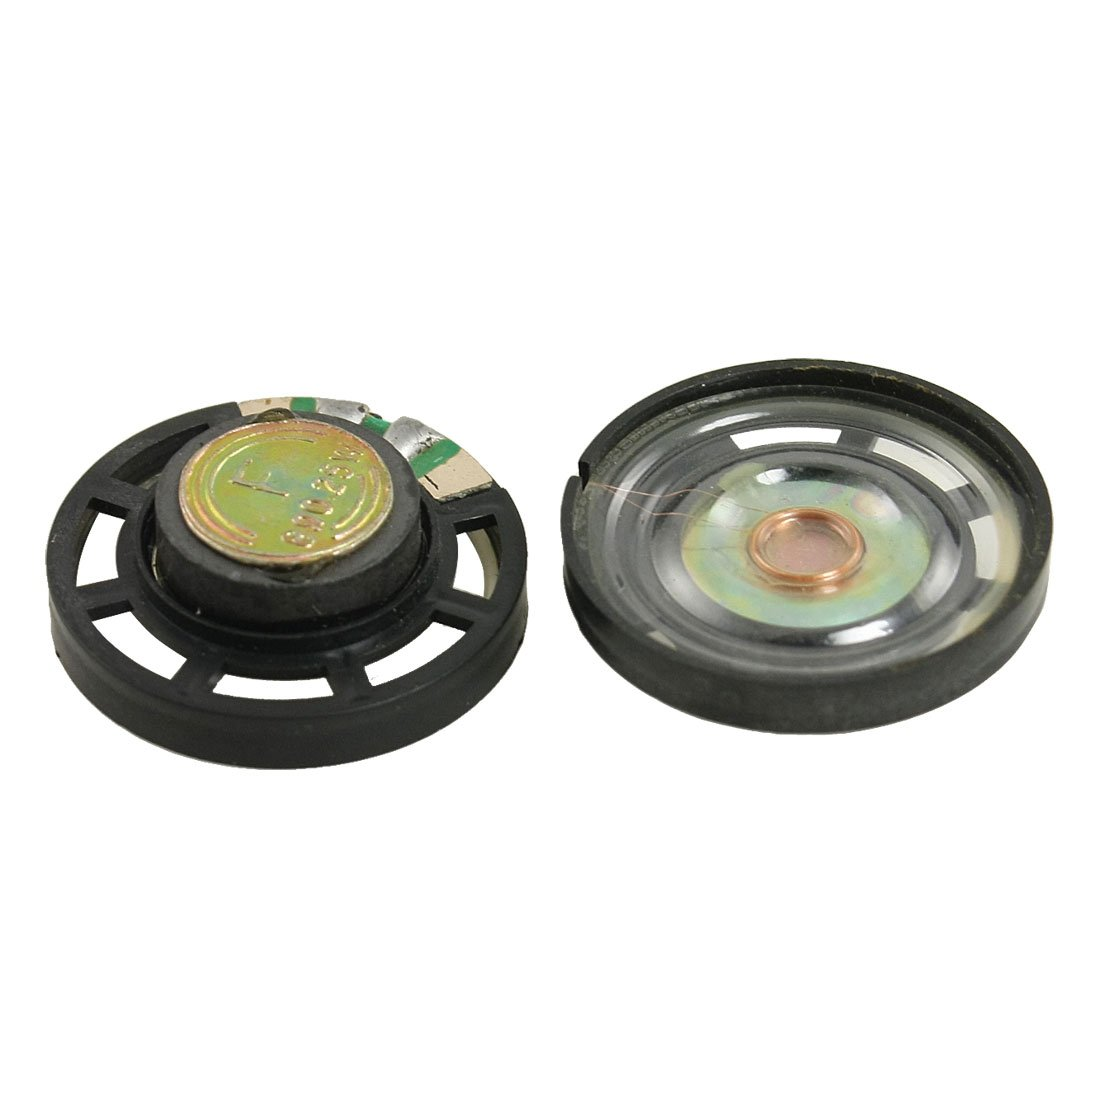 2 Pcs CES-External Magnetic Type Round Plastic Shell Speaker 8 Ohm 0.25W